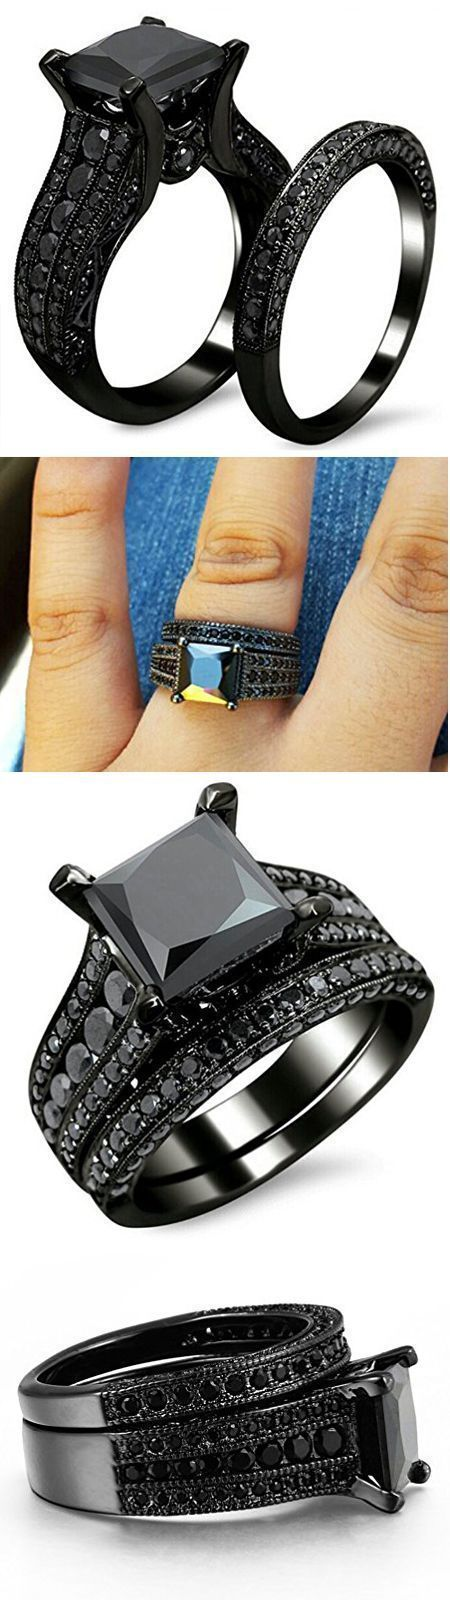 Awesome & Unique Goth / Gothic / steam punk Wedding / Anniversaries & Engagement Rings Set Ideas / Inspiration for Men / Her made in Black Gold, Sterling Silver & Princess Cut, Oval, Round, Pear, Skull Shaped with stones like Emeralds, Gems, Blue Sapphire, White Diamonds, Swarovski, Purple, Red, Yellow Crystals. These Brides, Bridal ring, Band sets are Vintage, Simple & Beautiful Art Deco Jewelry Products which is cheap, inexpensive, affordable budget Non-Traditional Victorian Rings for Him…